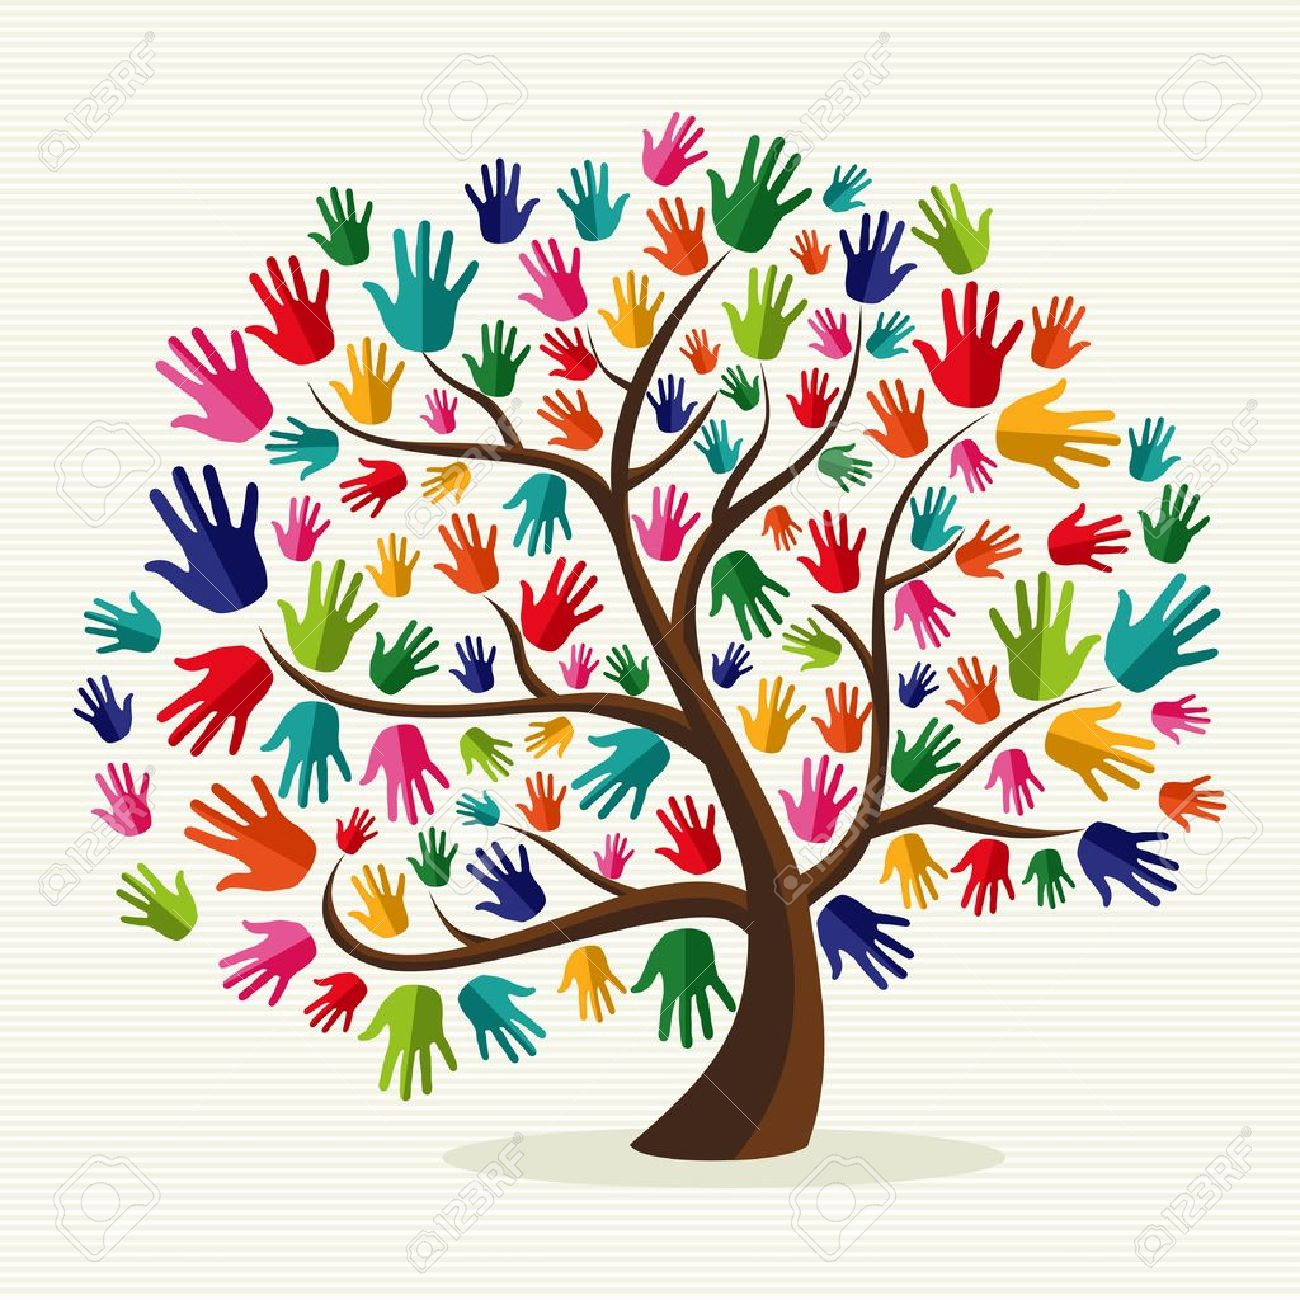 Diversity multi-ethnic hand tree illustration over stripe pattern background.  file layered for easy manipulation and custom coloring. Stock Vector - 20633178